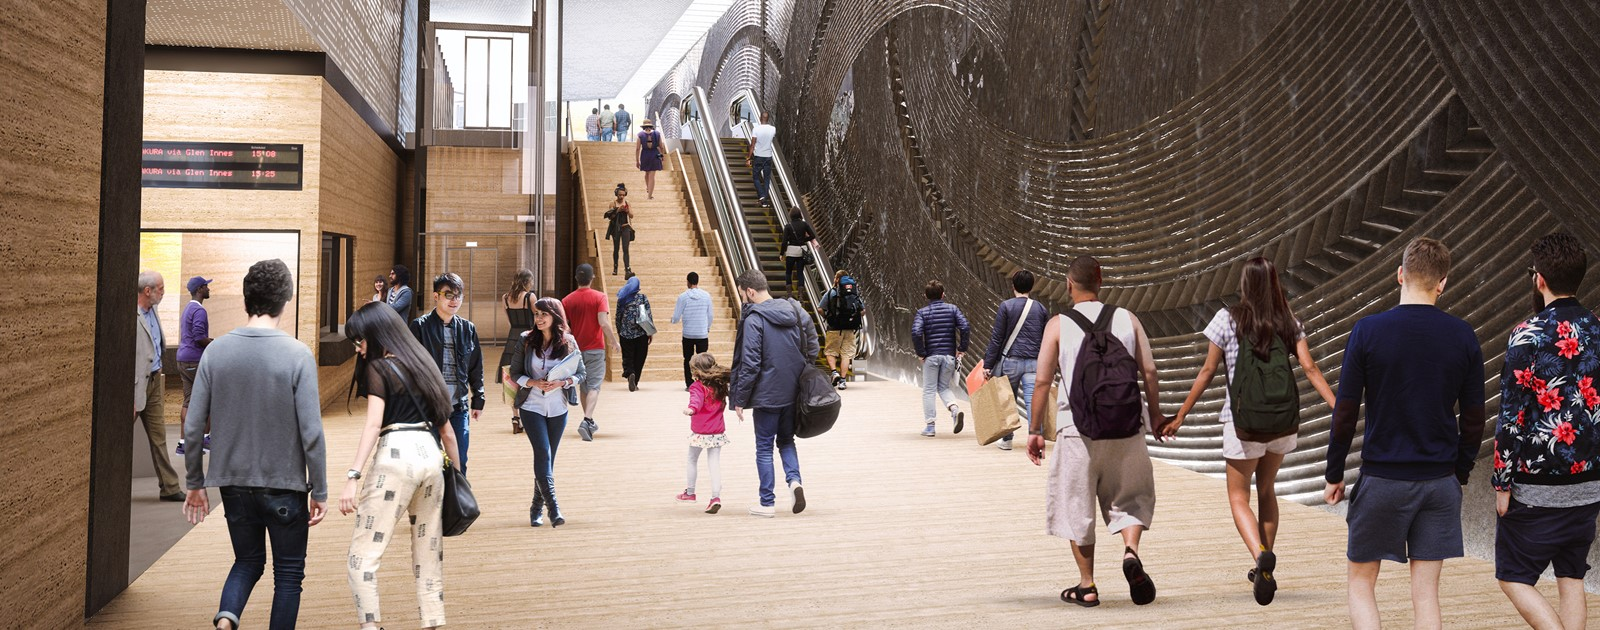 Artist's impression of the inside of the new Mt Eden train station.